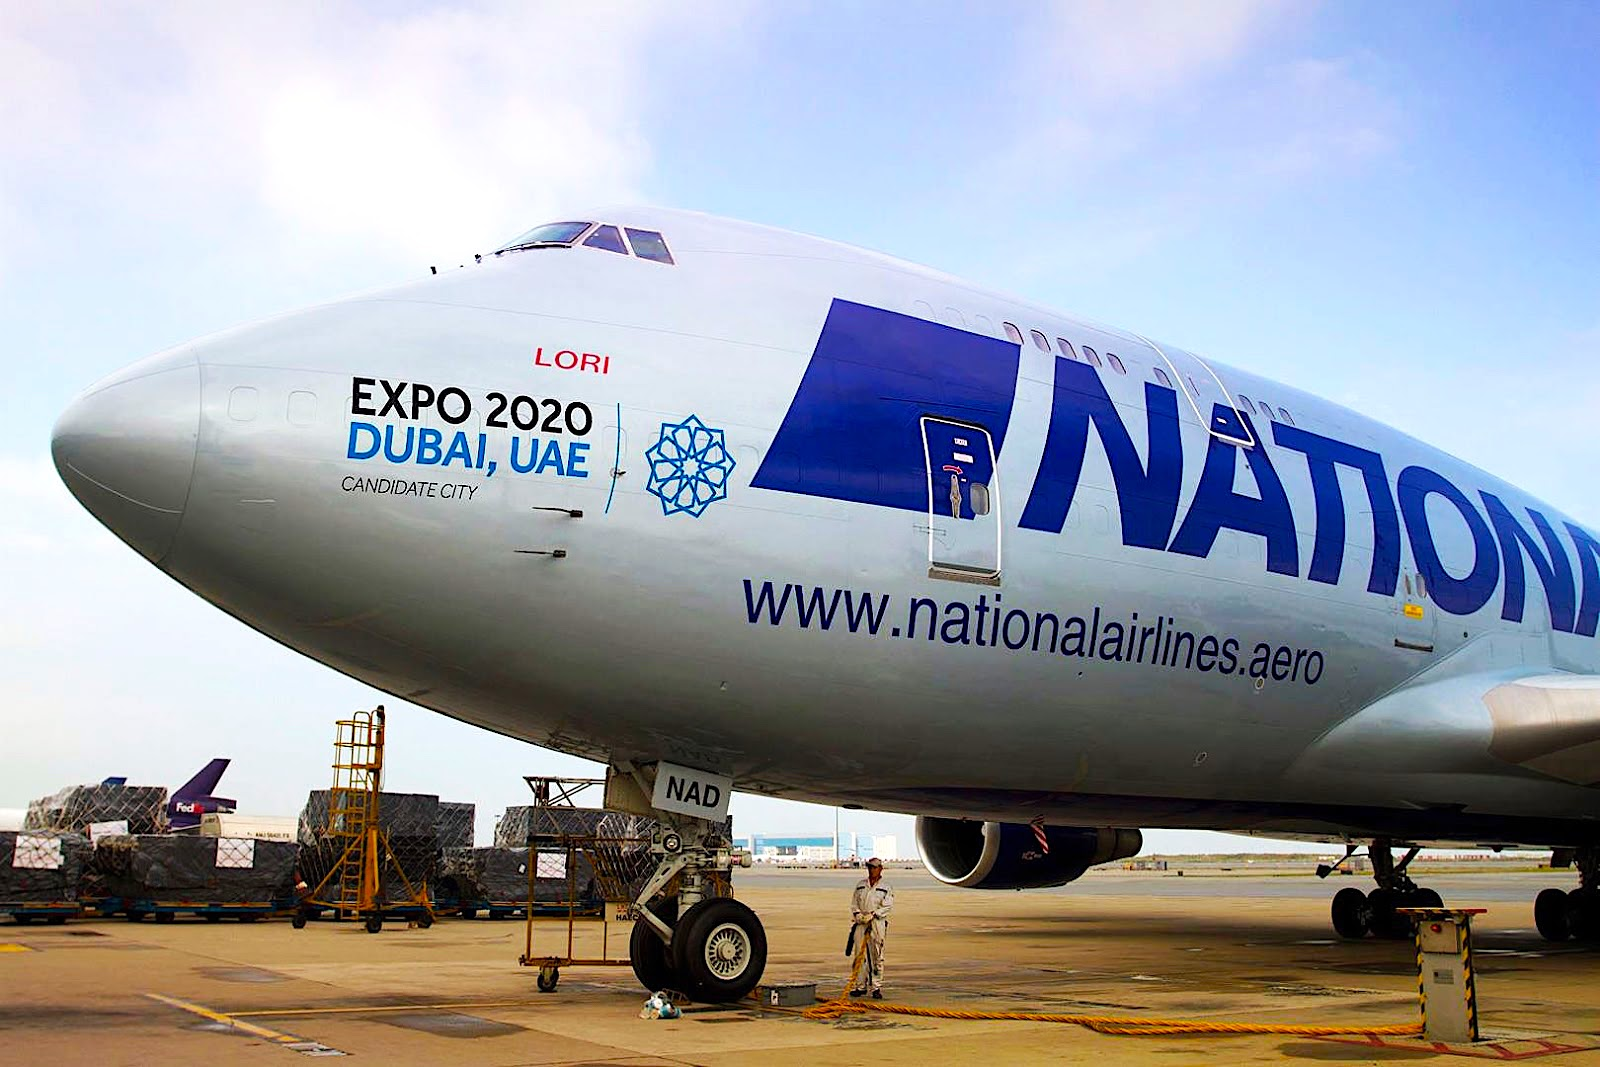 Brighter skies ahead for National Air Cargo – Air Cargo Europe Interview